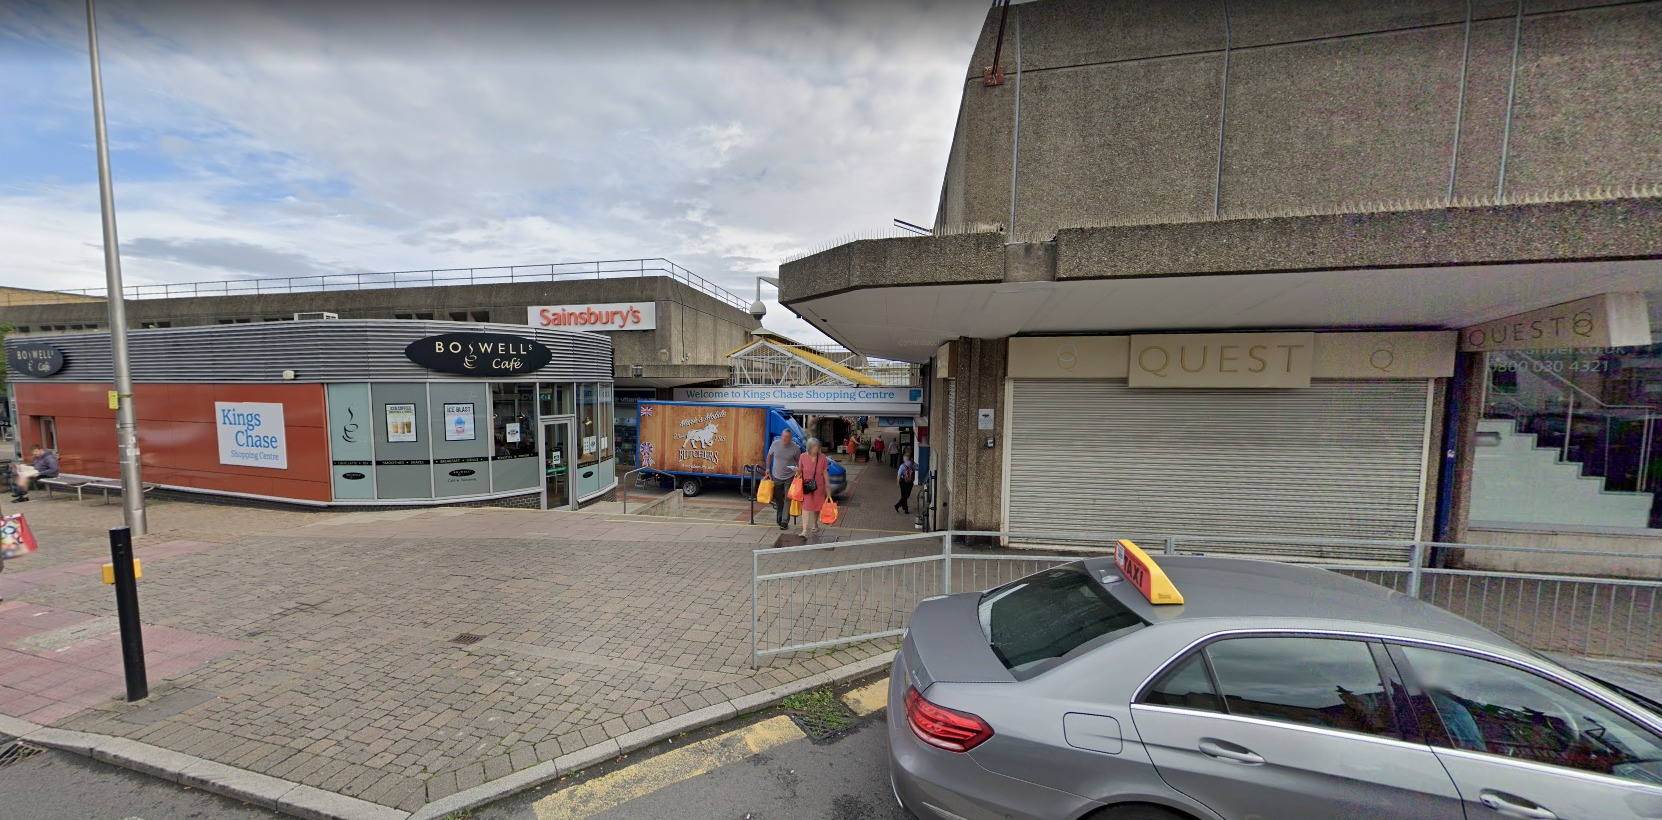 Kings Chase shopping centre - crucial  to the council's  plans